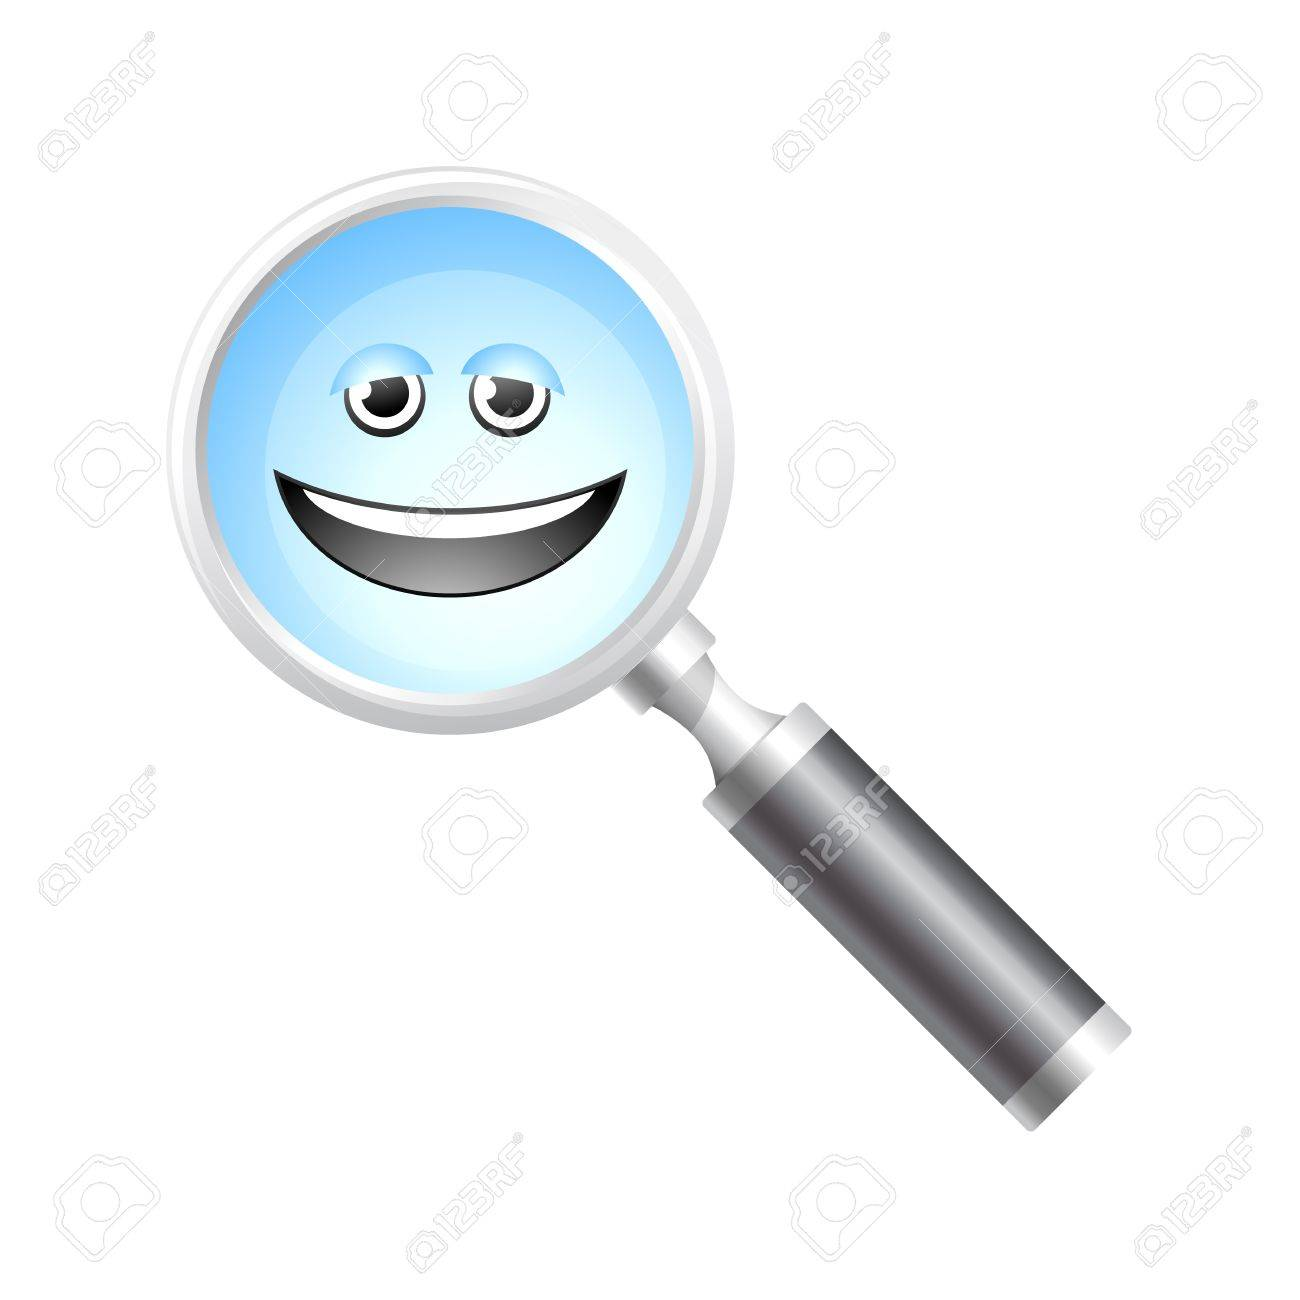 Smiling magnifier icon Stock Vector - 19605529